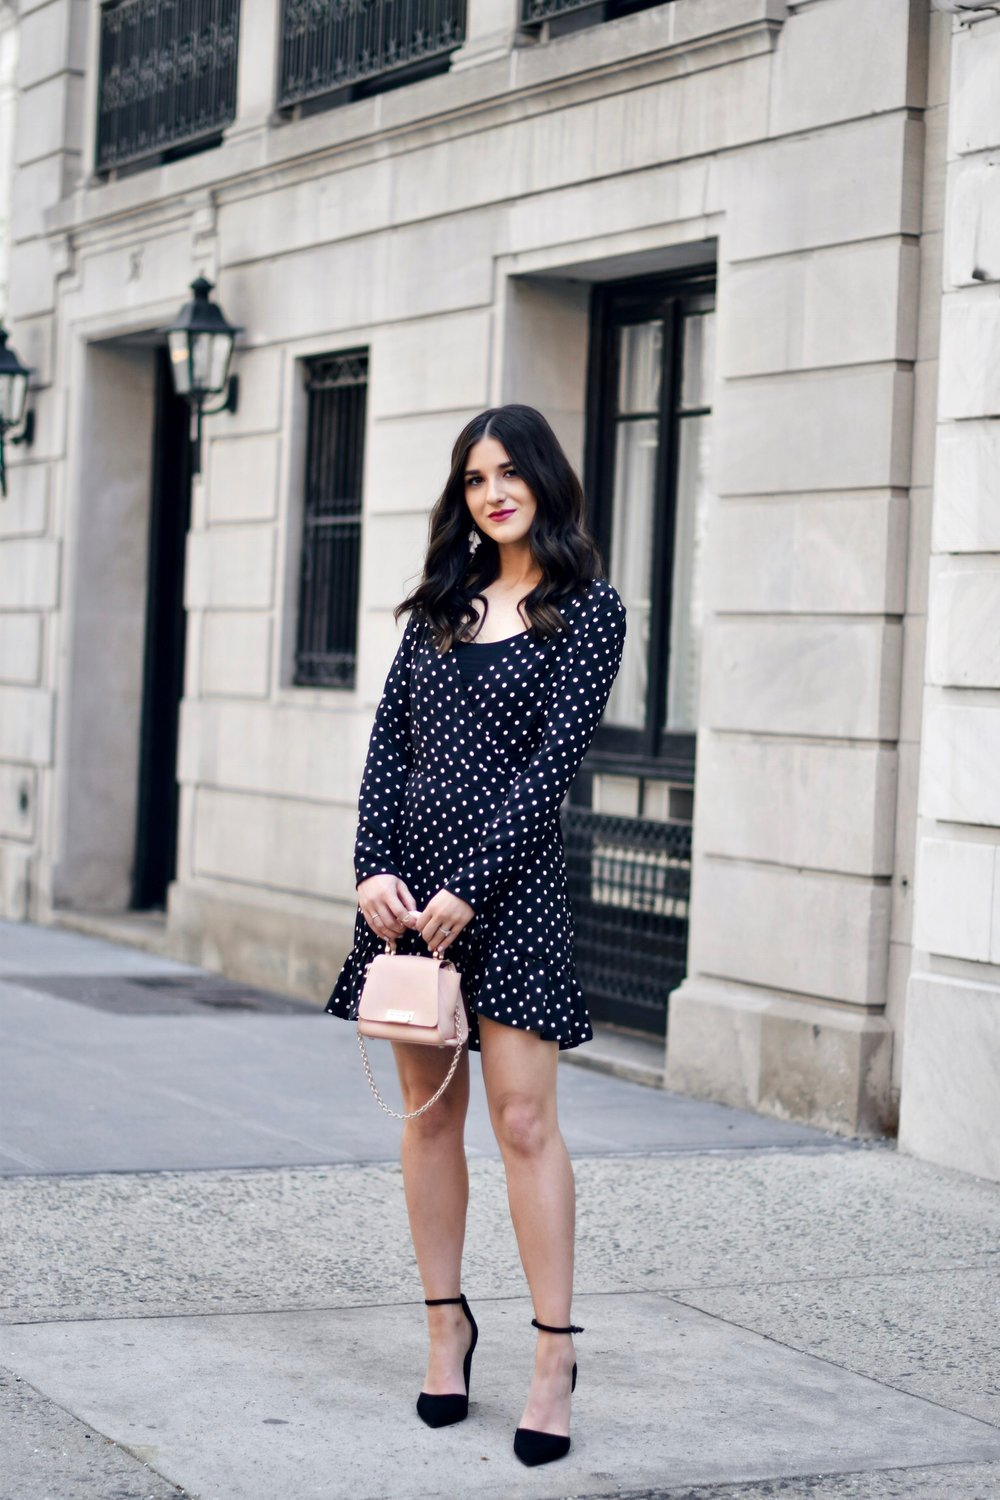 Polka Dot Wrap Dress Statement Earrings My 5 Blogging Rules While On My Honeymoon Esther Santer Fashion Blog NYC Street Style Blogger Outfit OOTD Trendy Kendra Scott ASOS Travel Content Married Husband Happy Beautiful Summer Pointy Toe Ankle Strap Bag.JPG